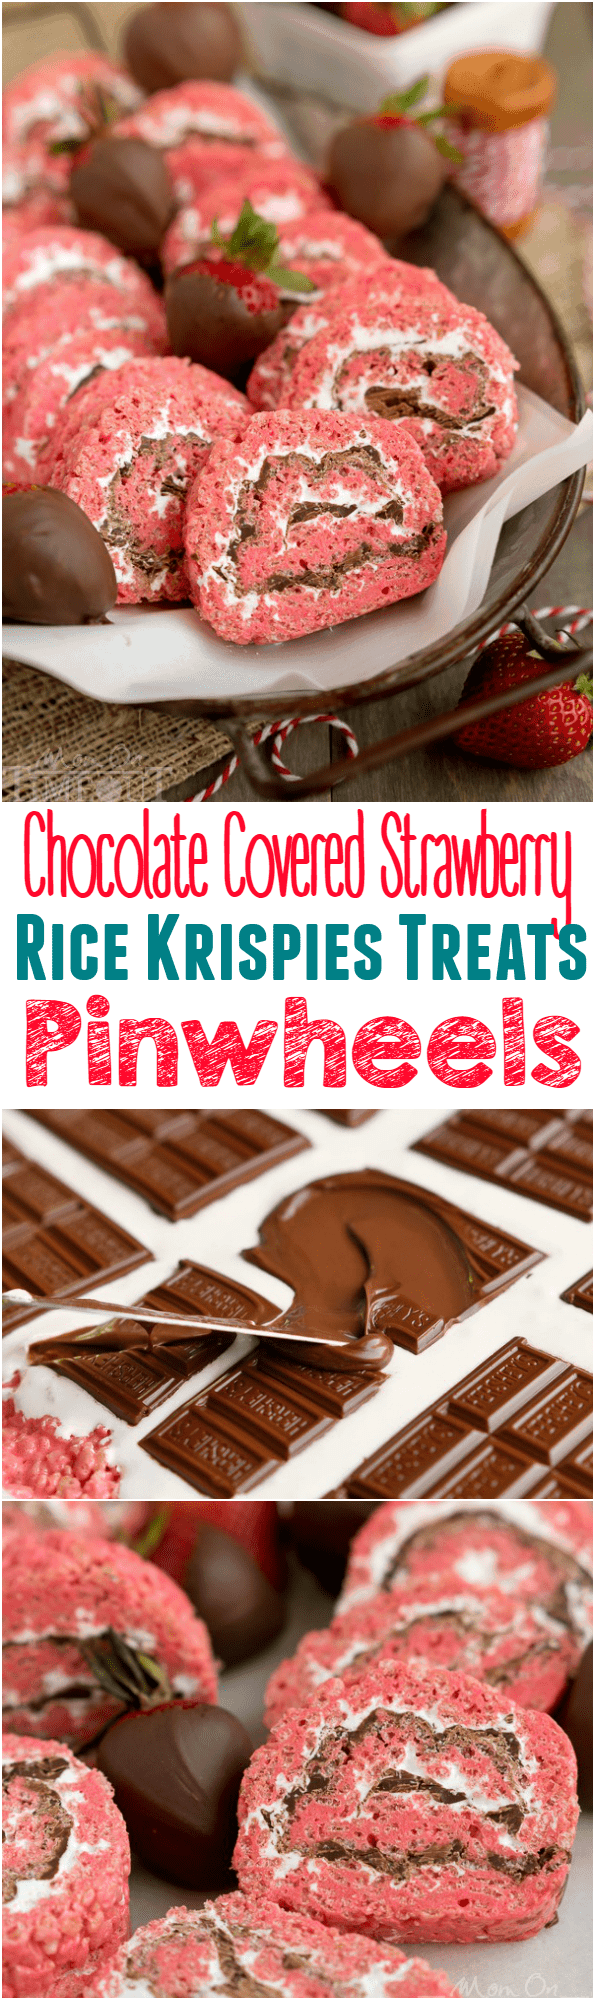 Chocolate Covered Strawberry Rice Krispies Treats Pinwheels are the perfect treat for your next party or picnic! Pretty and pink and so yummy to eat, this easy dessert is guaranteed to become a new family favorite! | MomOnTimeout.com #ricekrispiestreats